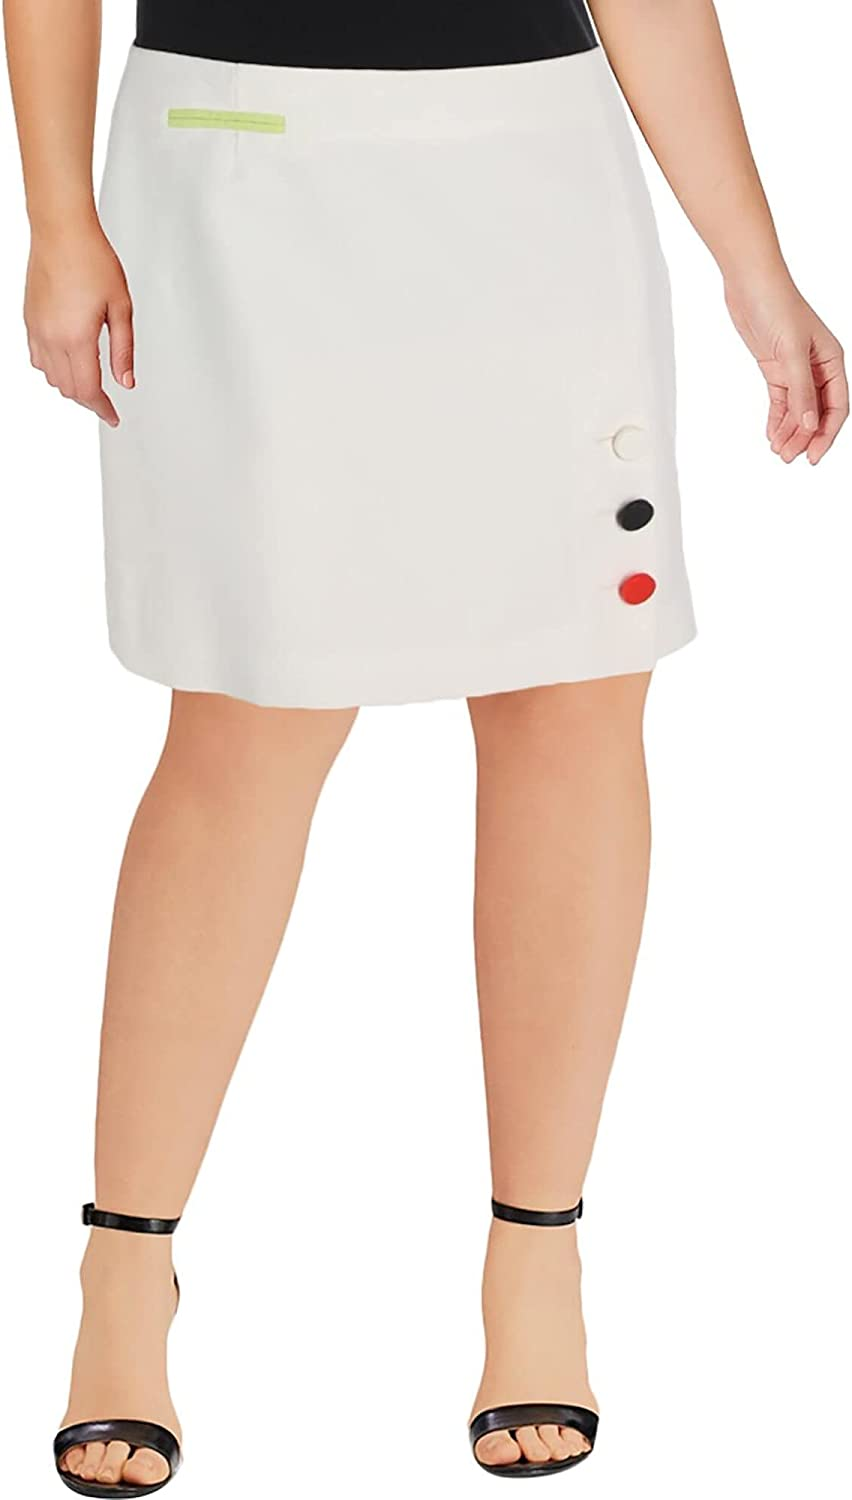 Anne Klein Womens Ivory Embellished Above The Knee A-Line Wear to Work Skirt Size 14